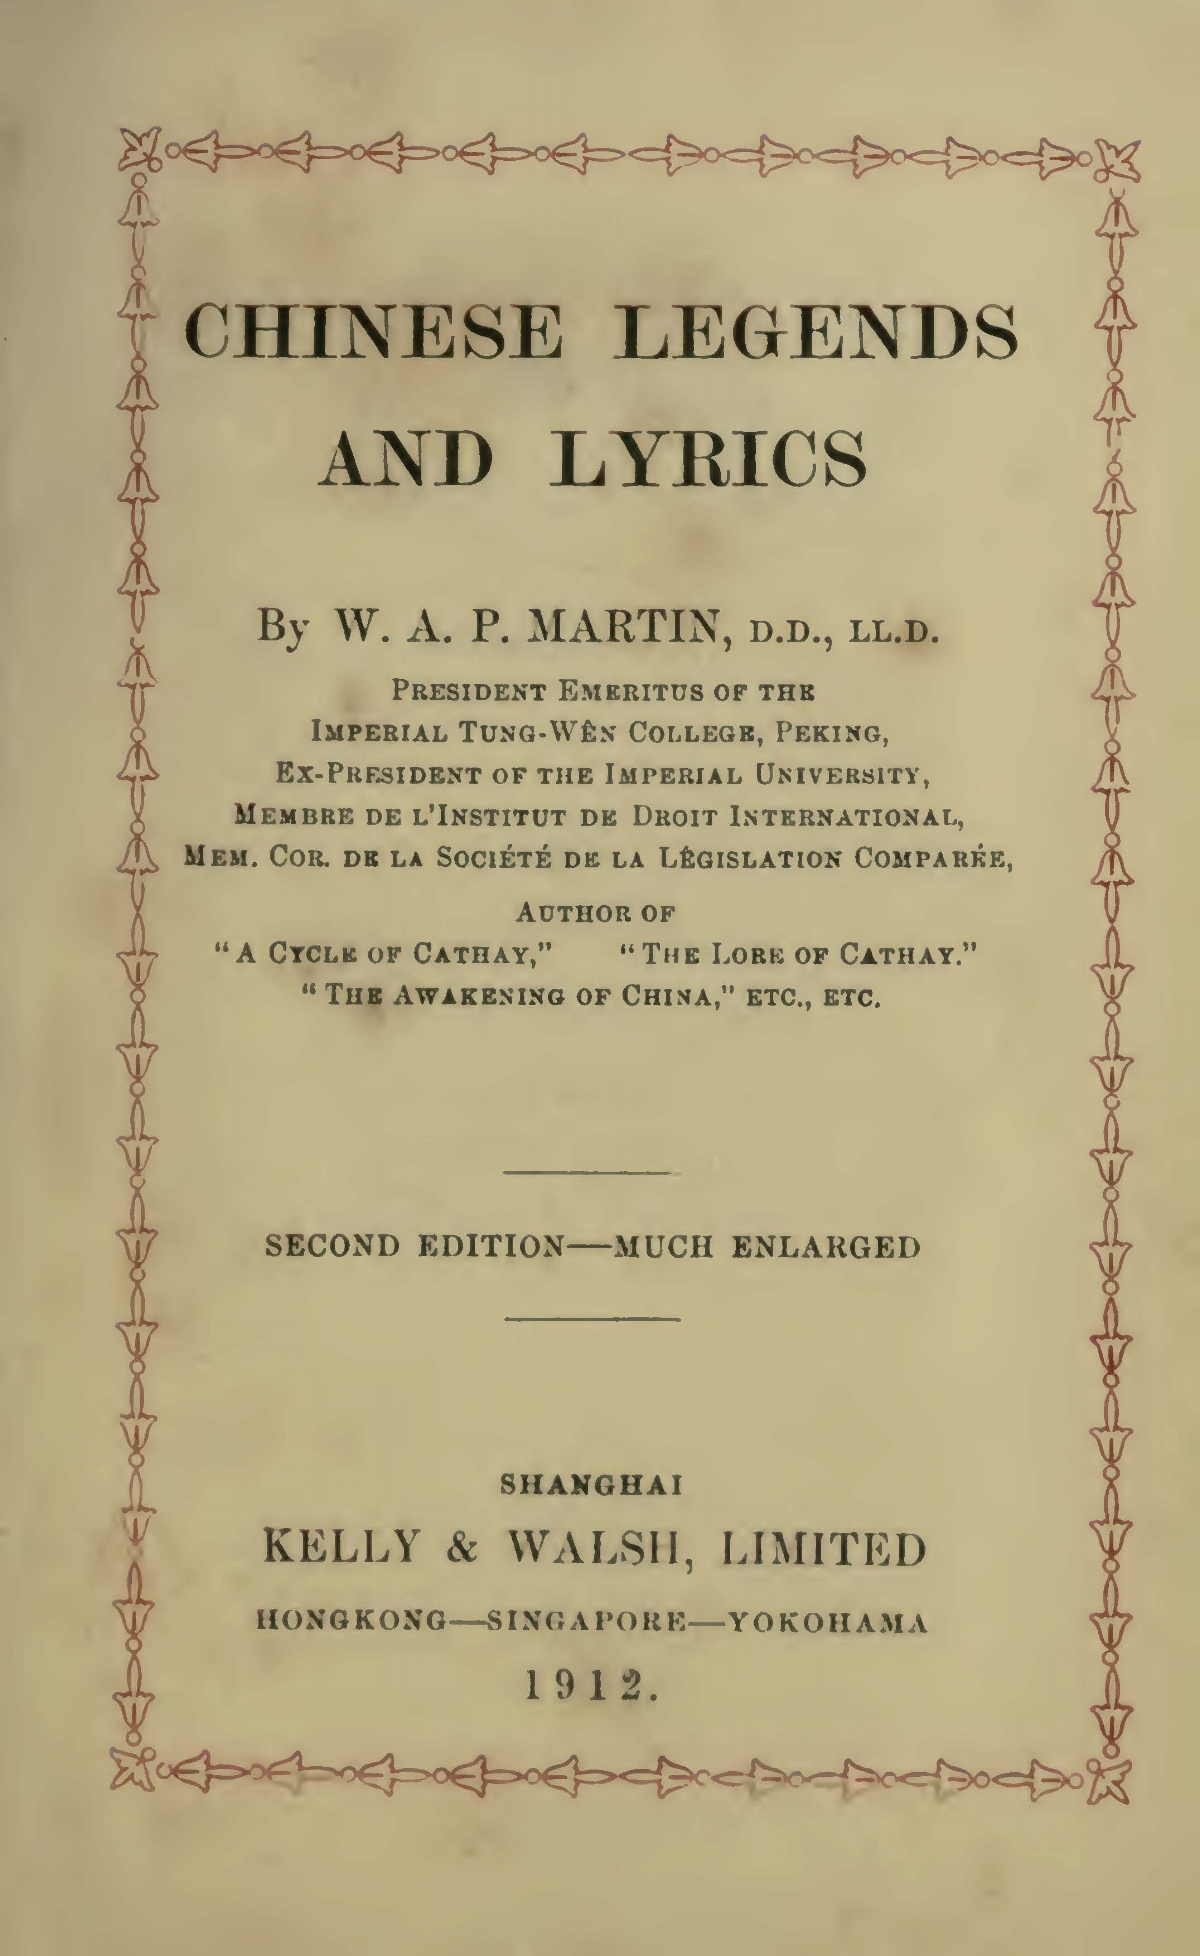 Martin, William Alexander Parsons, Chinese Legends and Lyrics Title Page.jpg